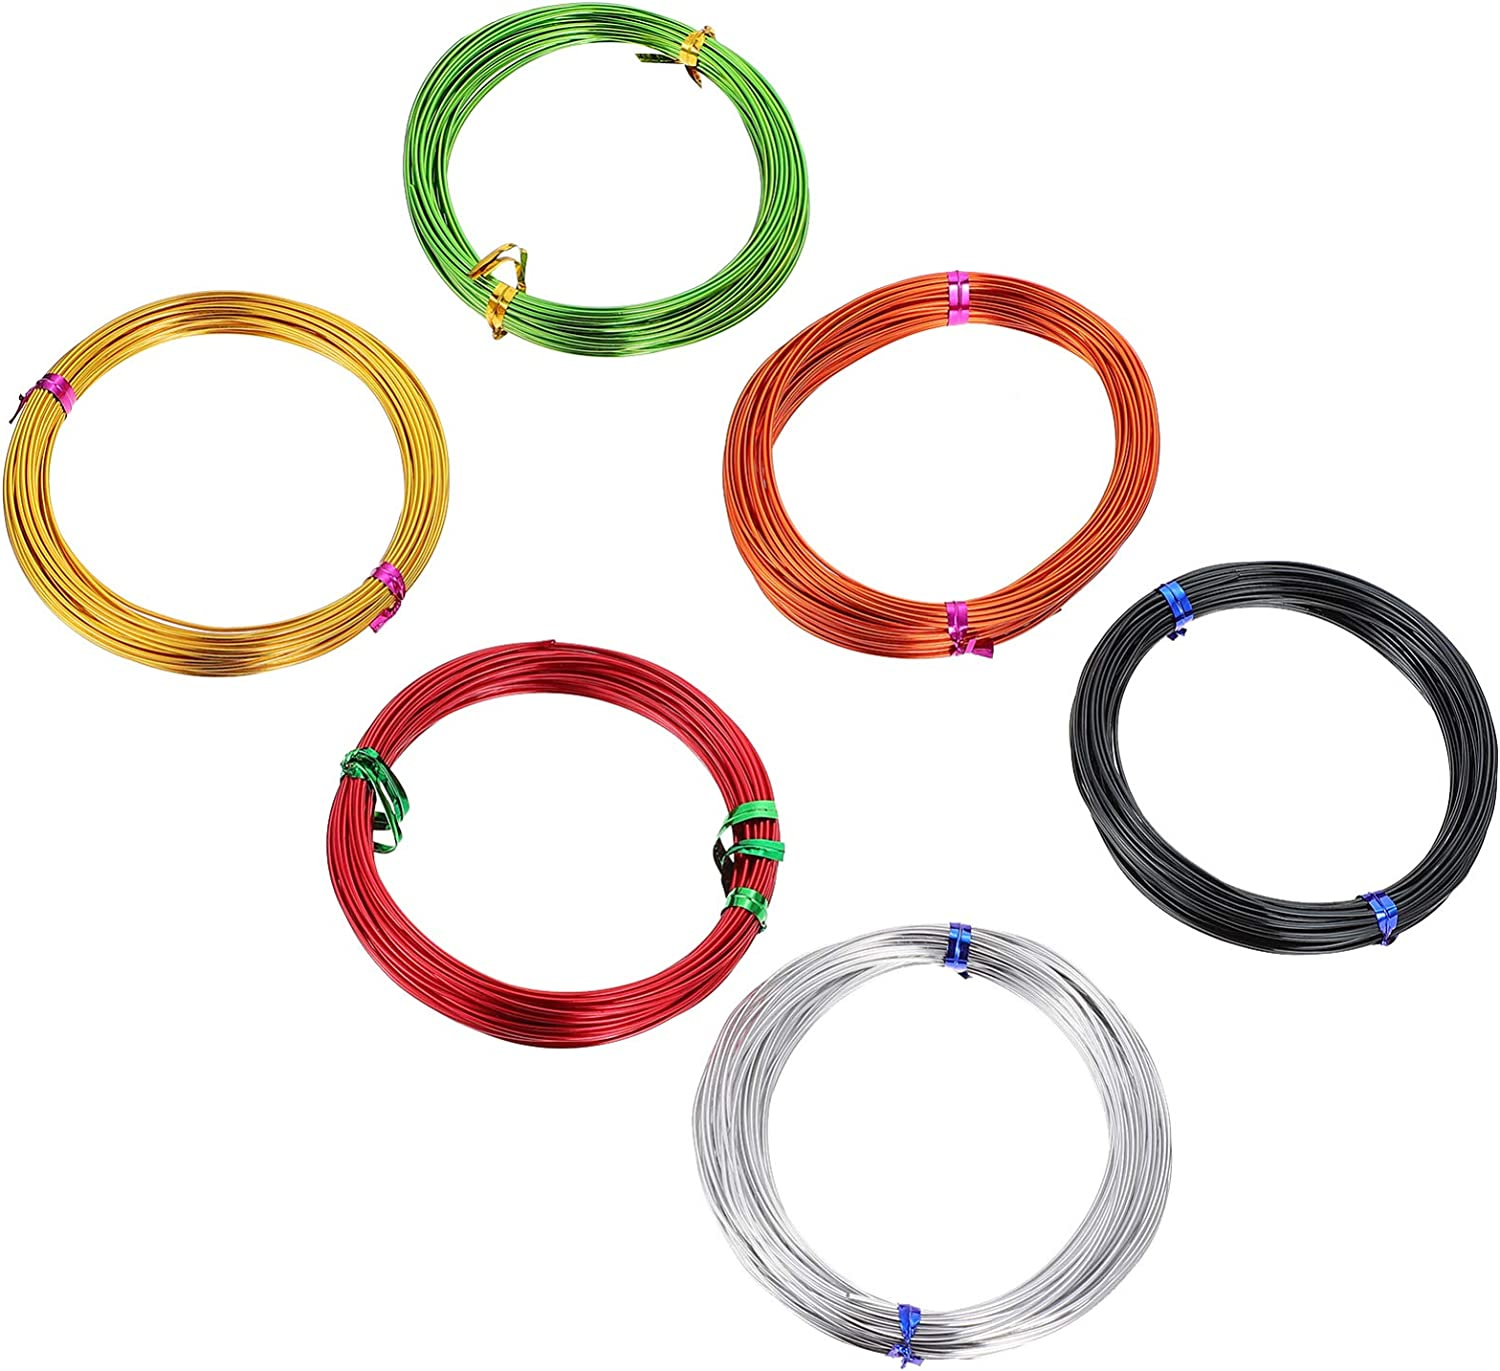 EXCEART 6 Pcs Colored Aluminum Max 48% OFF Artisti Wire Metal Craft Flexible Max 77% OFF